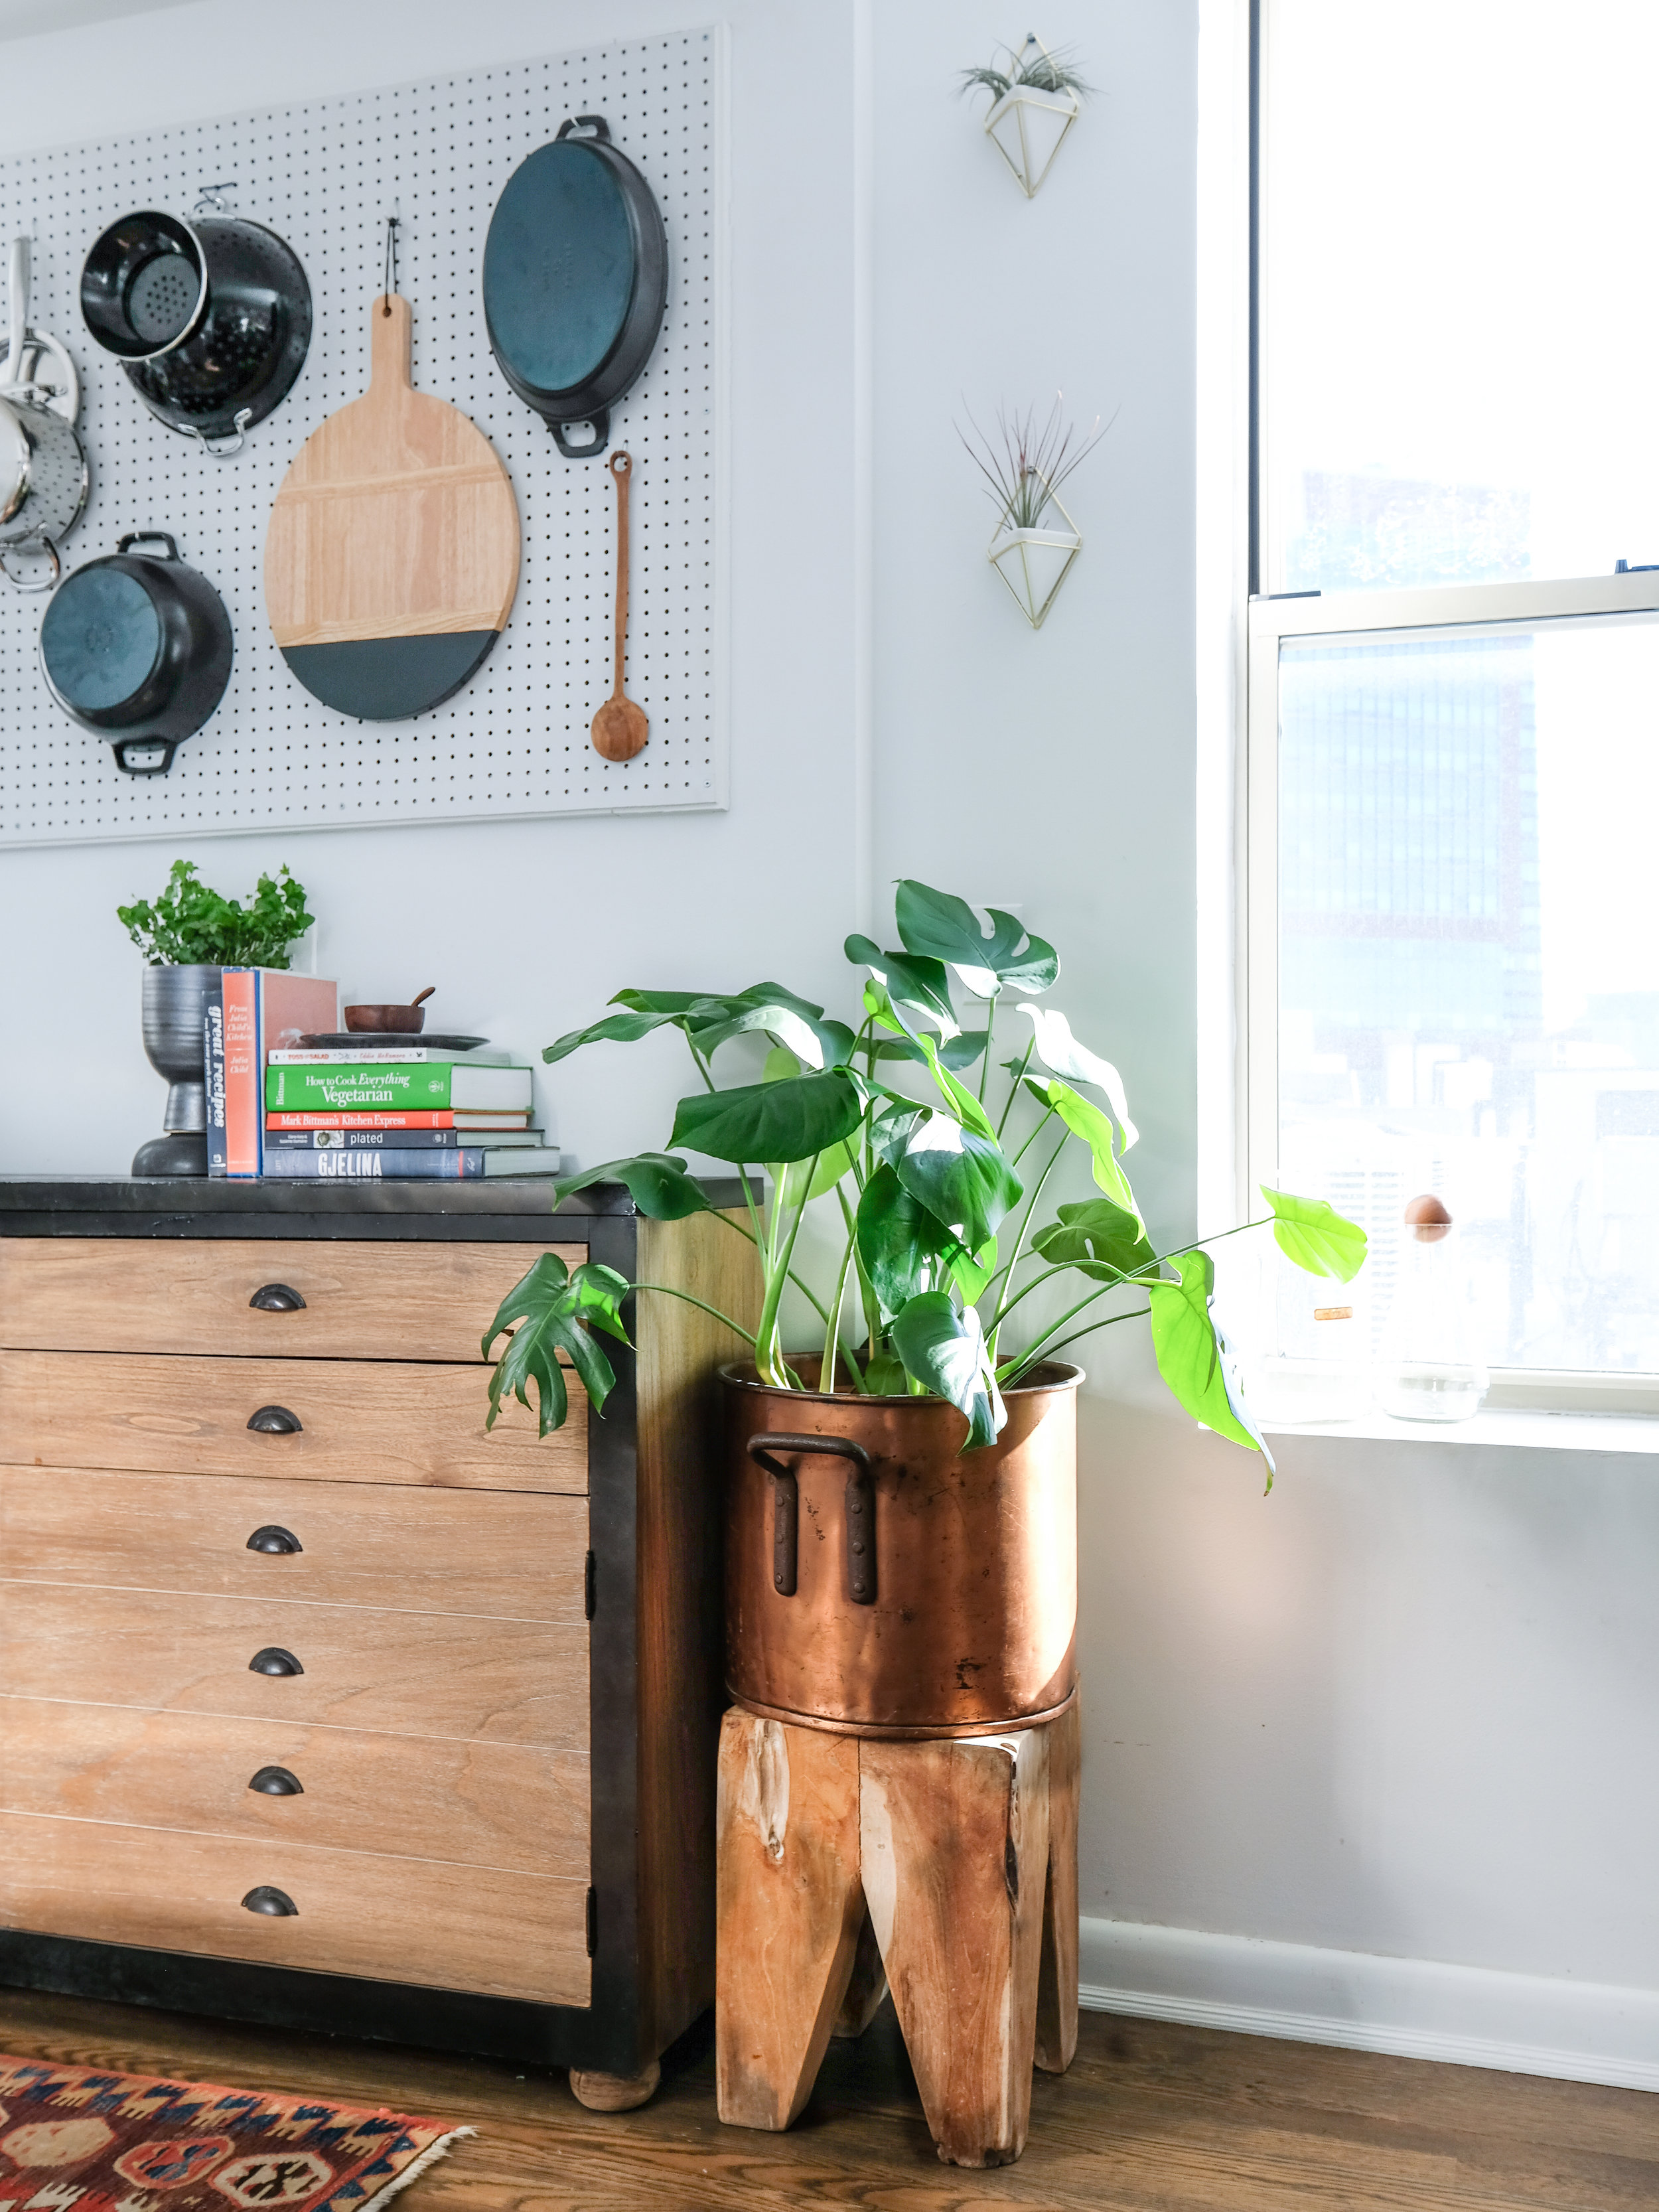 My beloved shallow dresser that doubles as a counter and much-need storage in my kitchen. The cutting board, ladle, woodblock stool, and carafe stopper are more wooden accents.